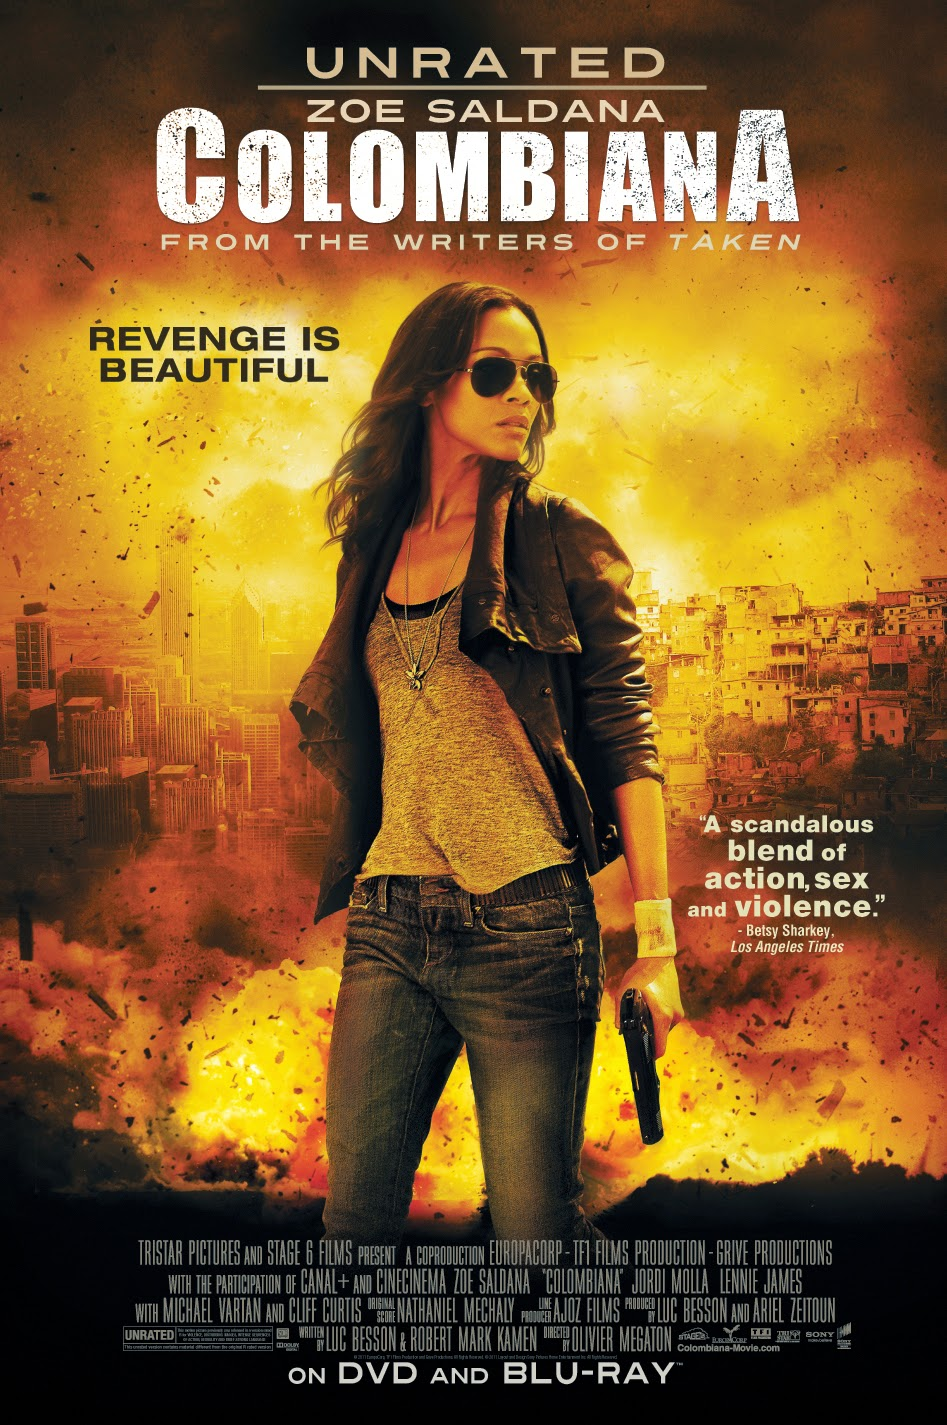 Colombiana (2011) UNRATED ระห่ำเกินตาย